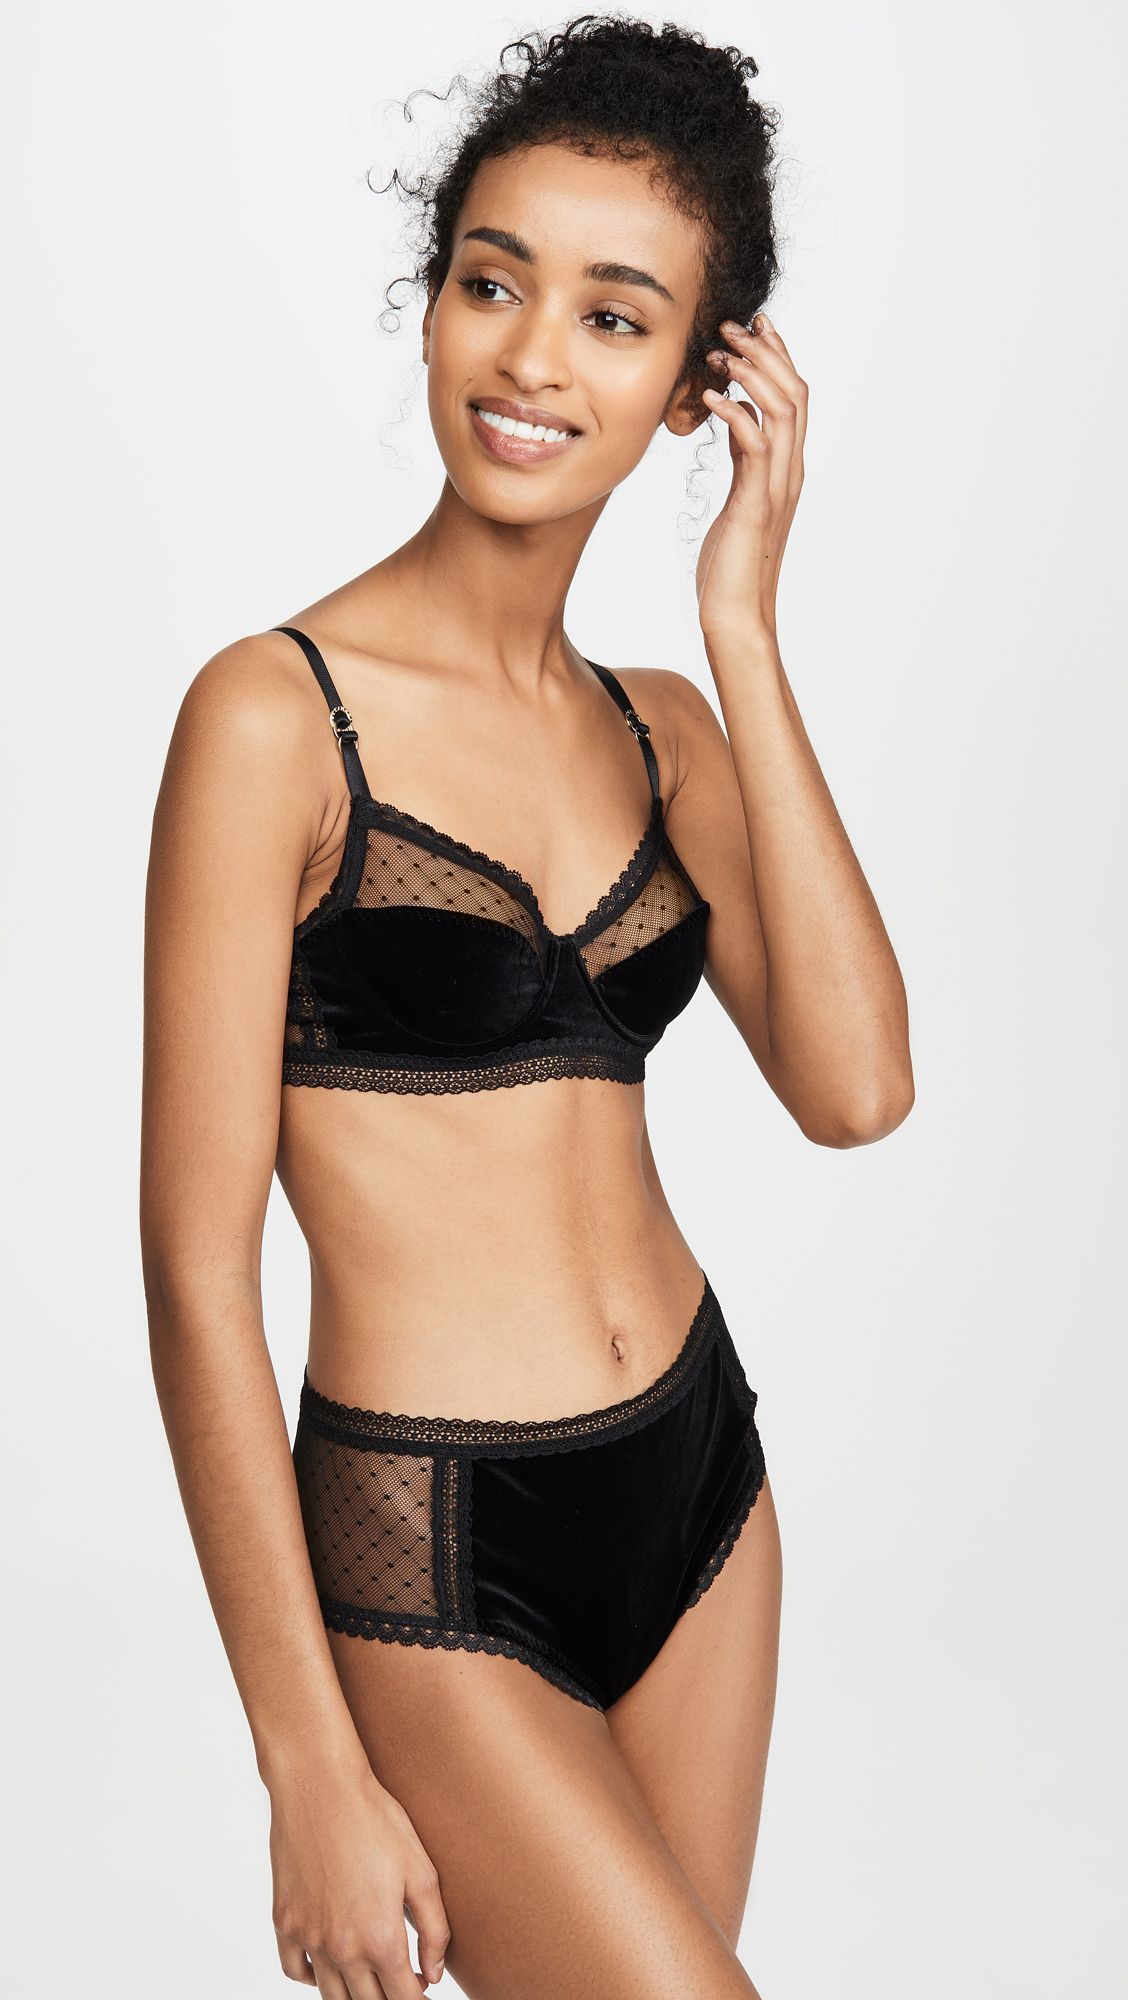 The Lingerie Trends Everyone Should Know About 20